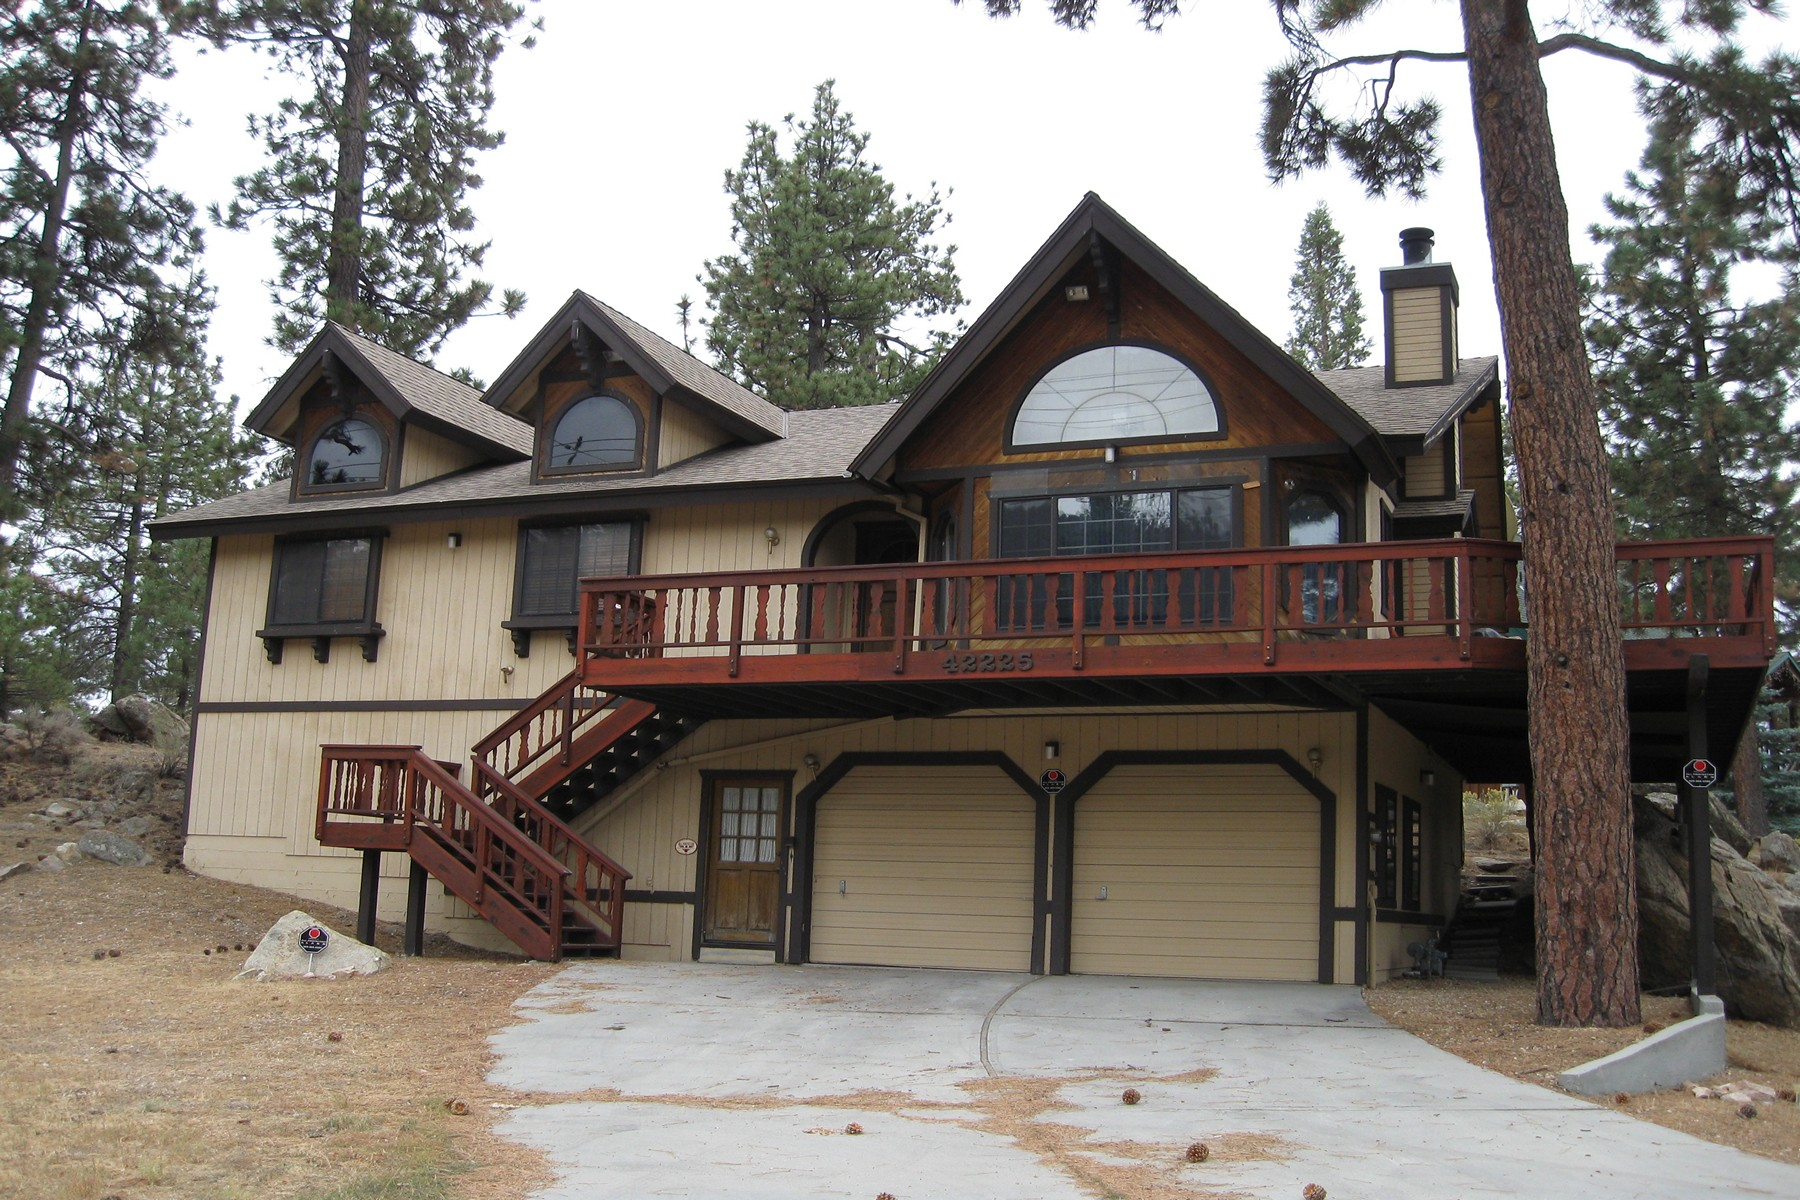 Single Family Home for Sale at 42225 North Shore Big Bear City, California, 92314 United States